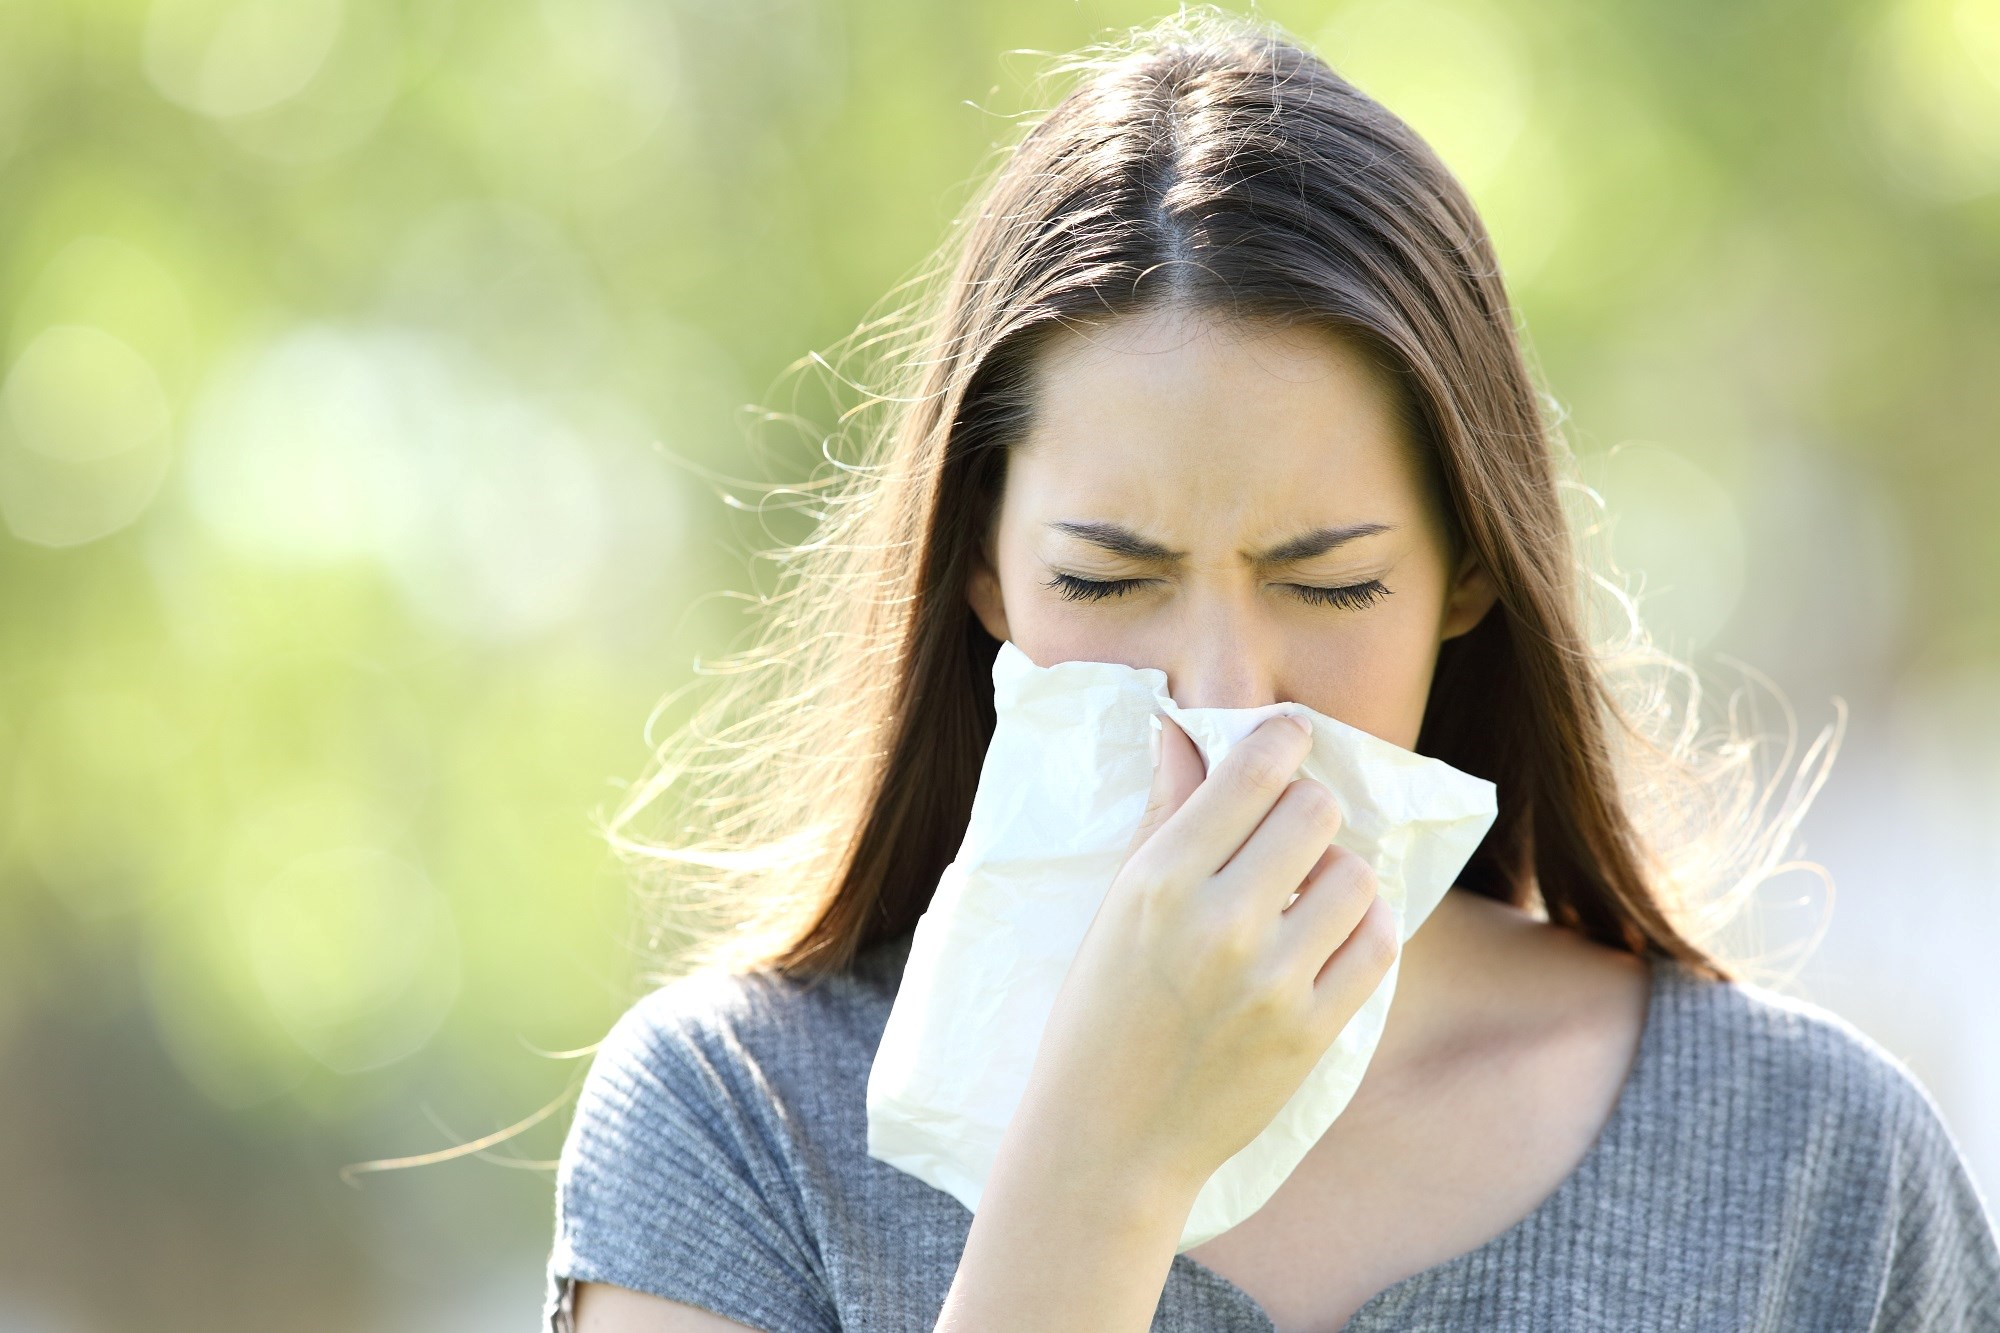 Allergic Rhinitis Has Negative Effect on Quality of Life in Teens